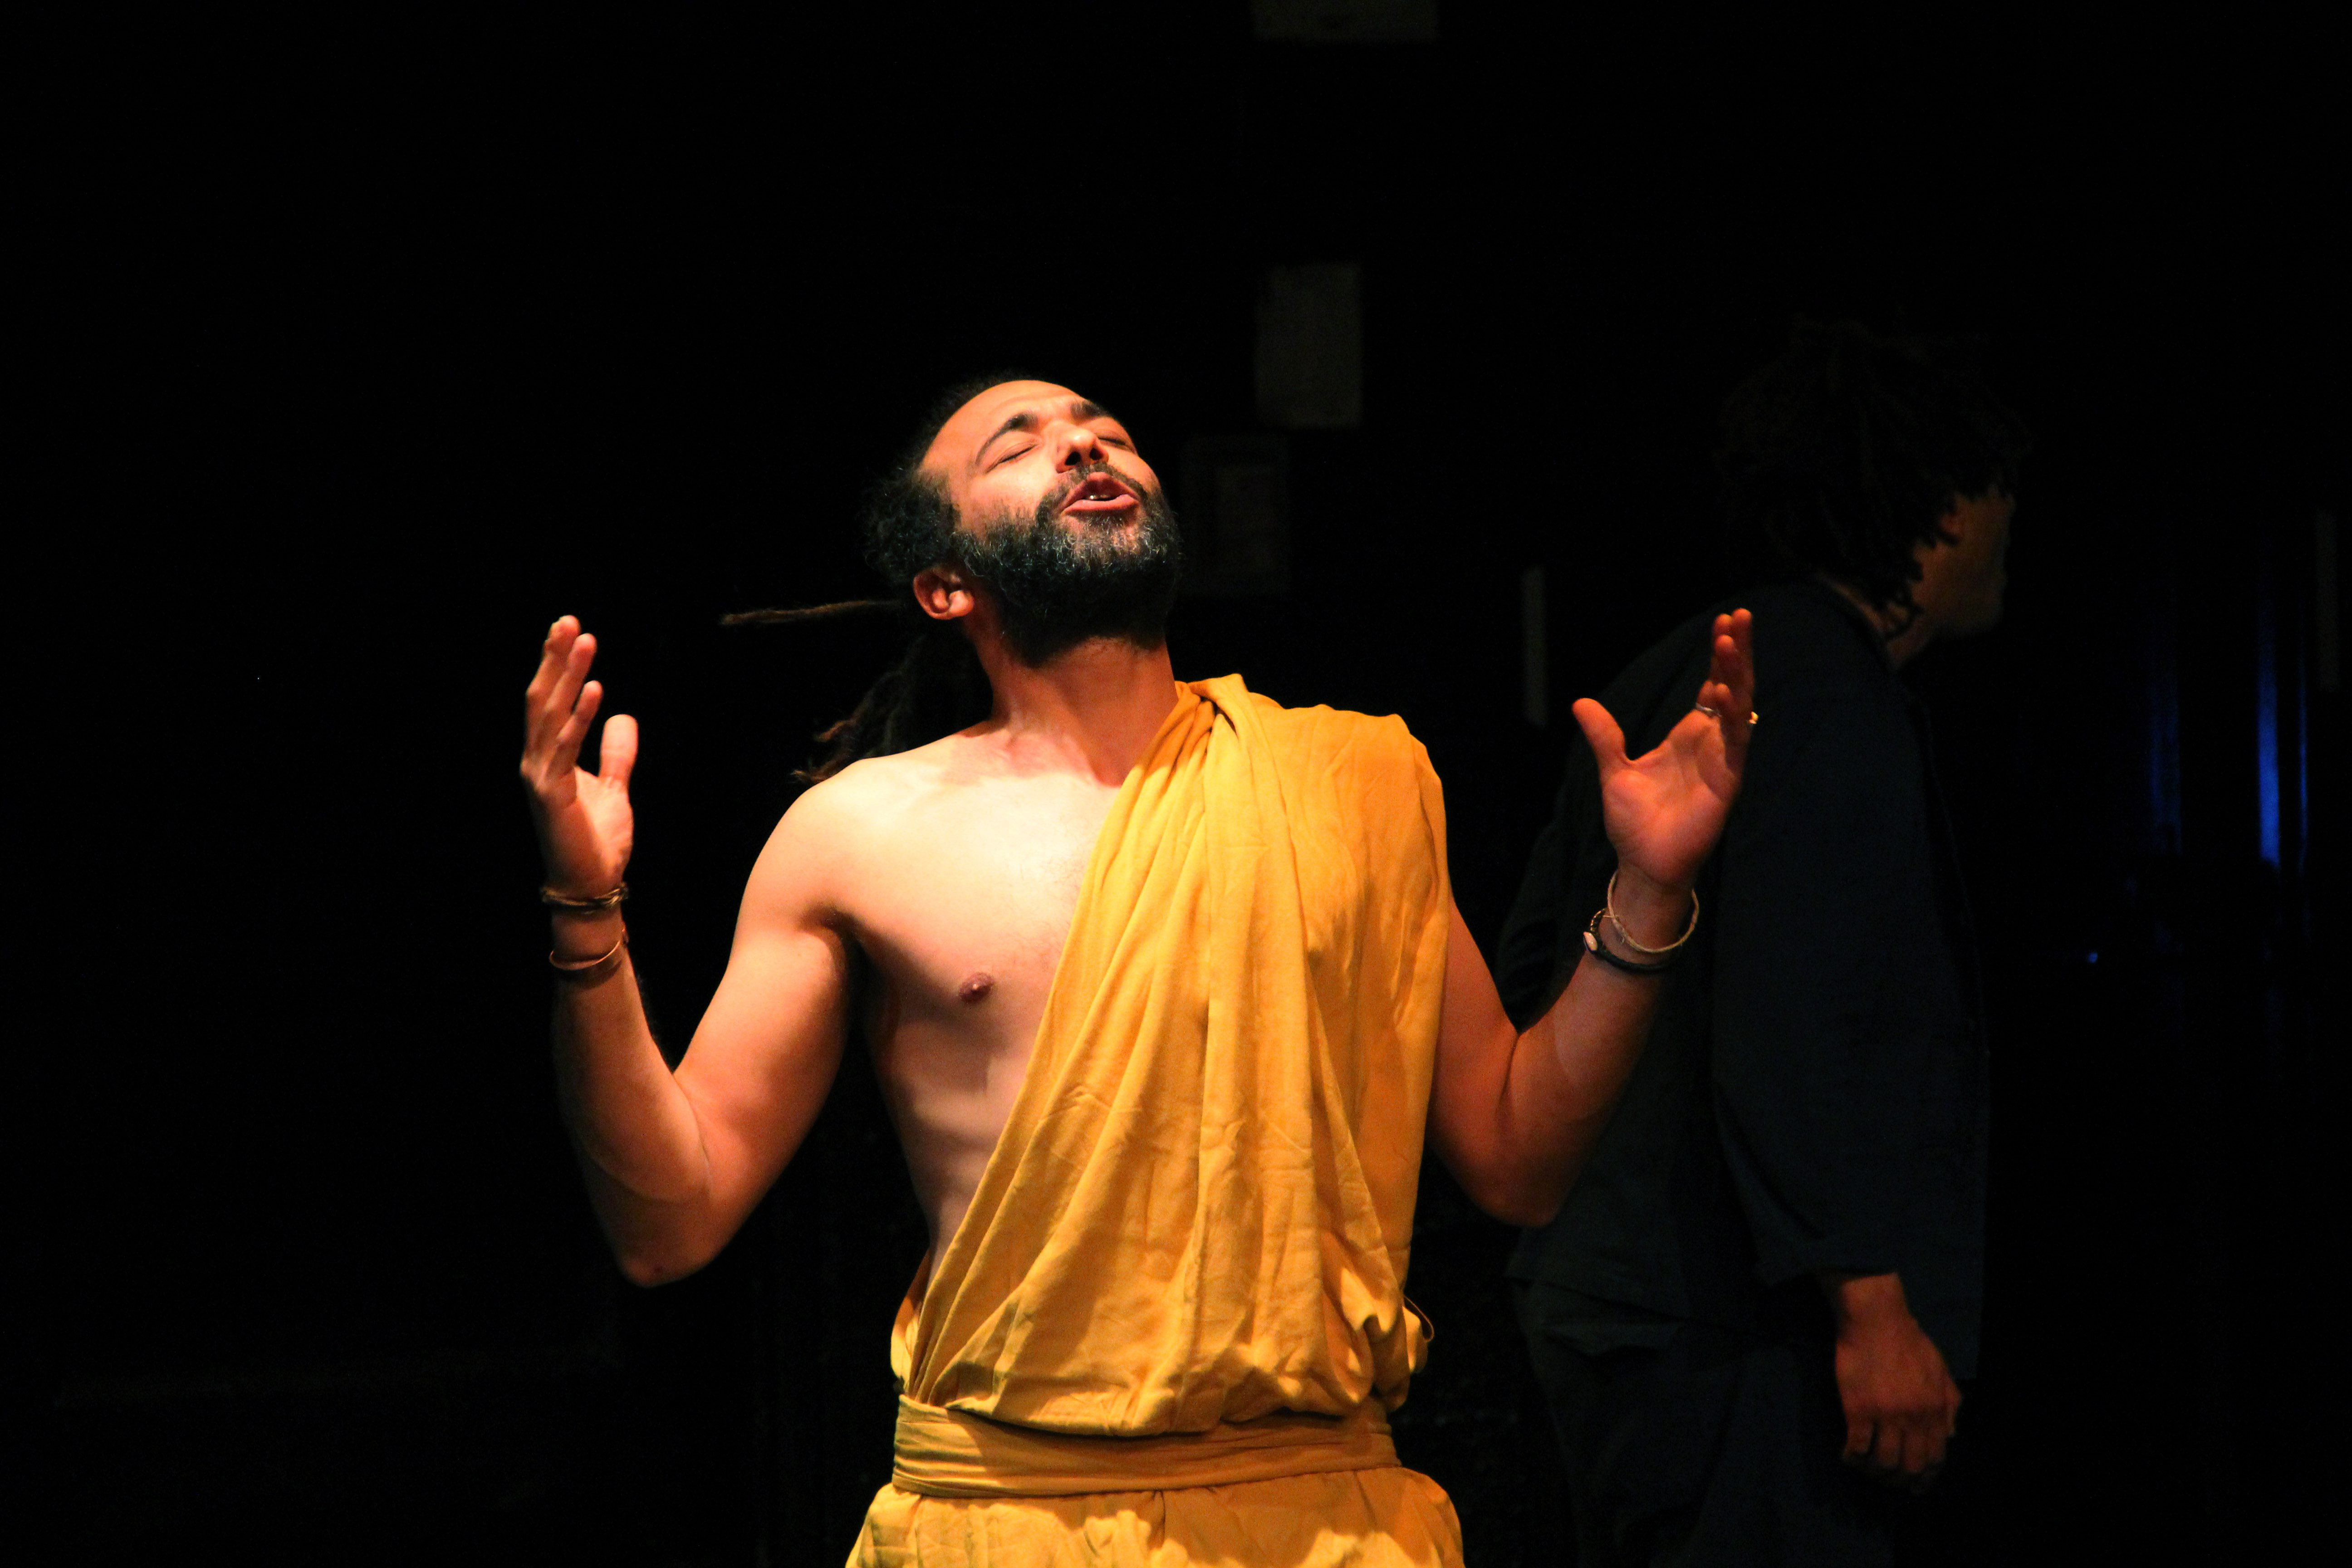 performer wearing yellow looking up